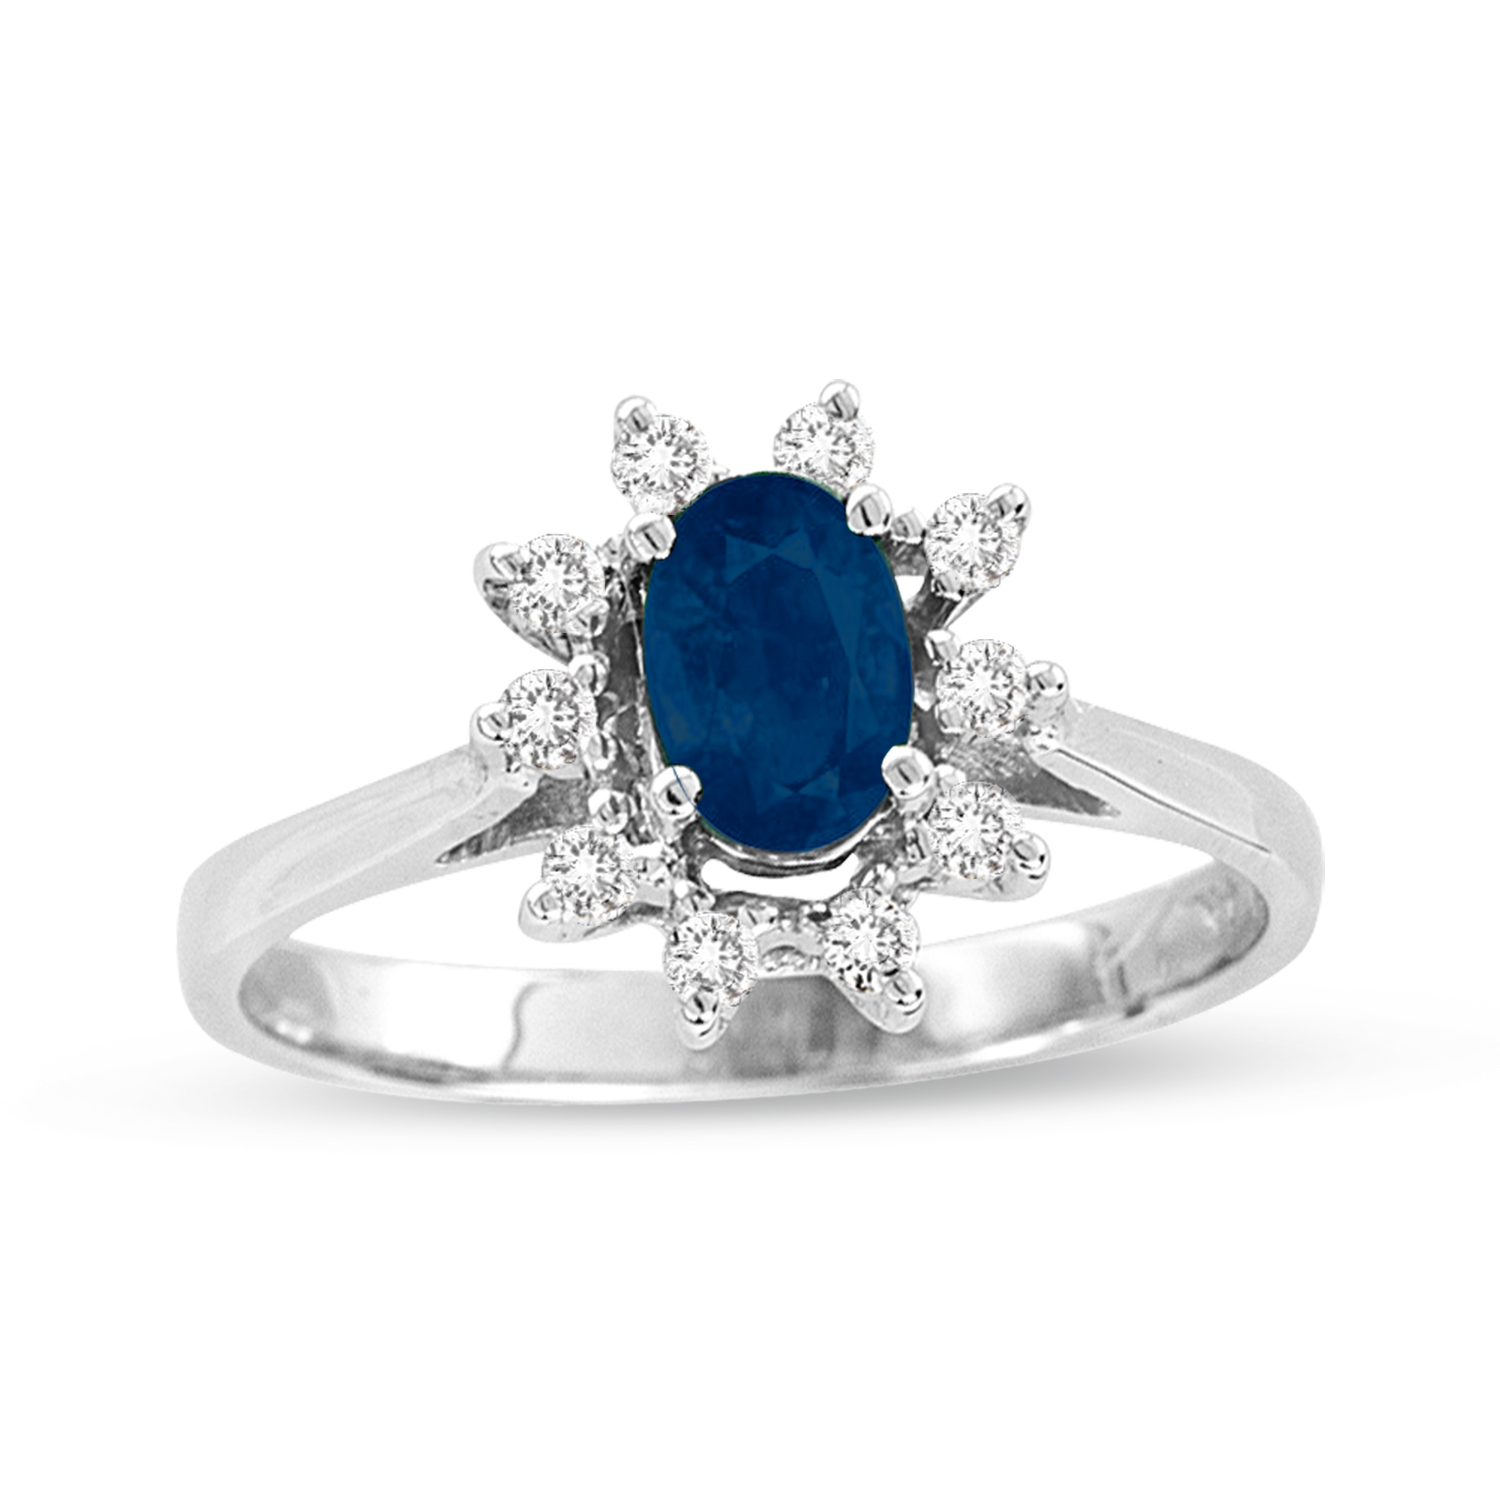 0.75ct tw Oval Sapphire and Diamond Ring in 14k Gold